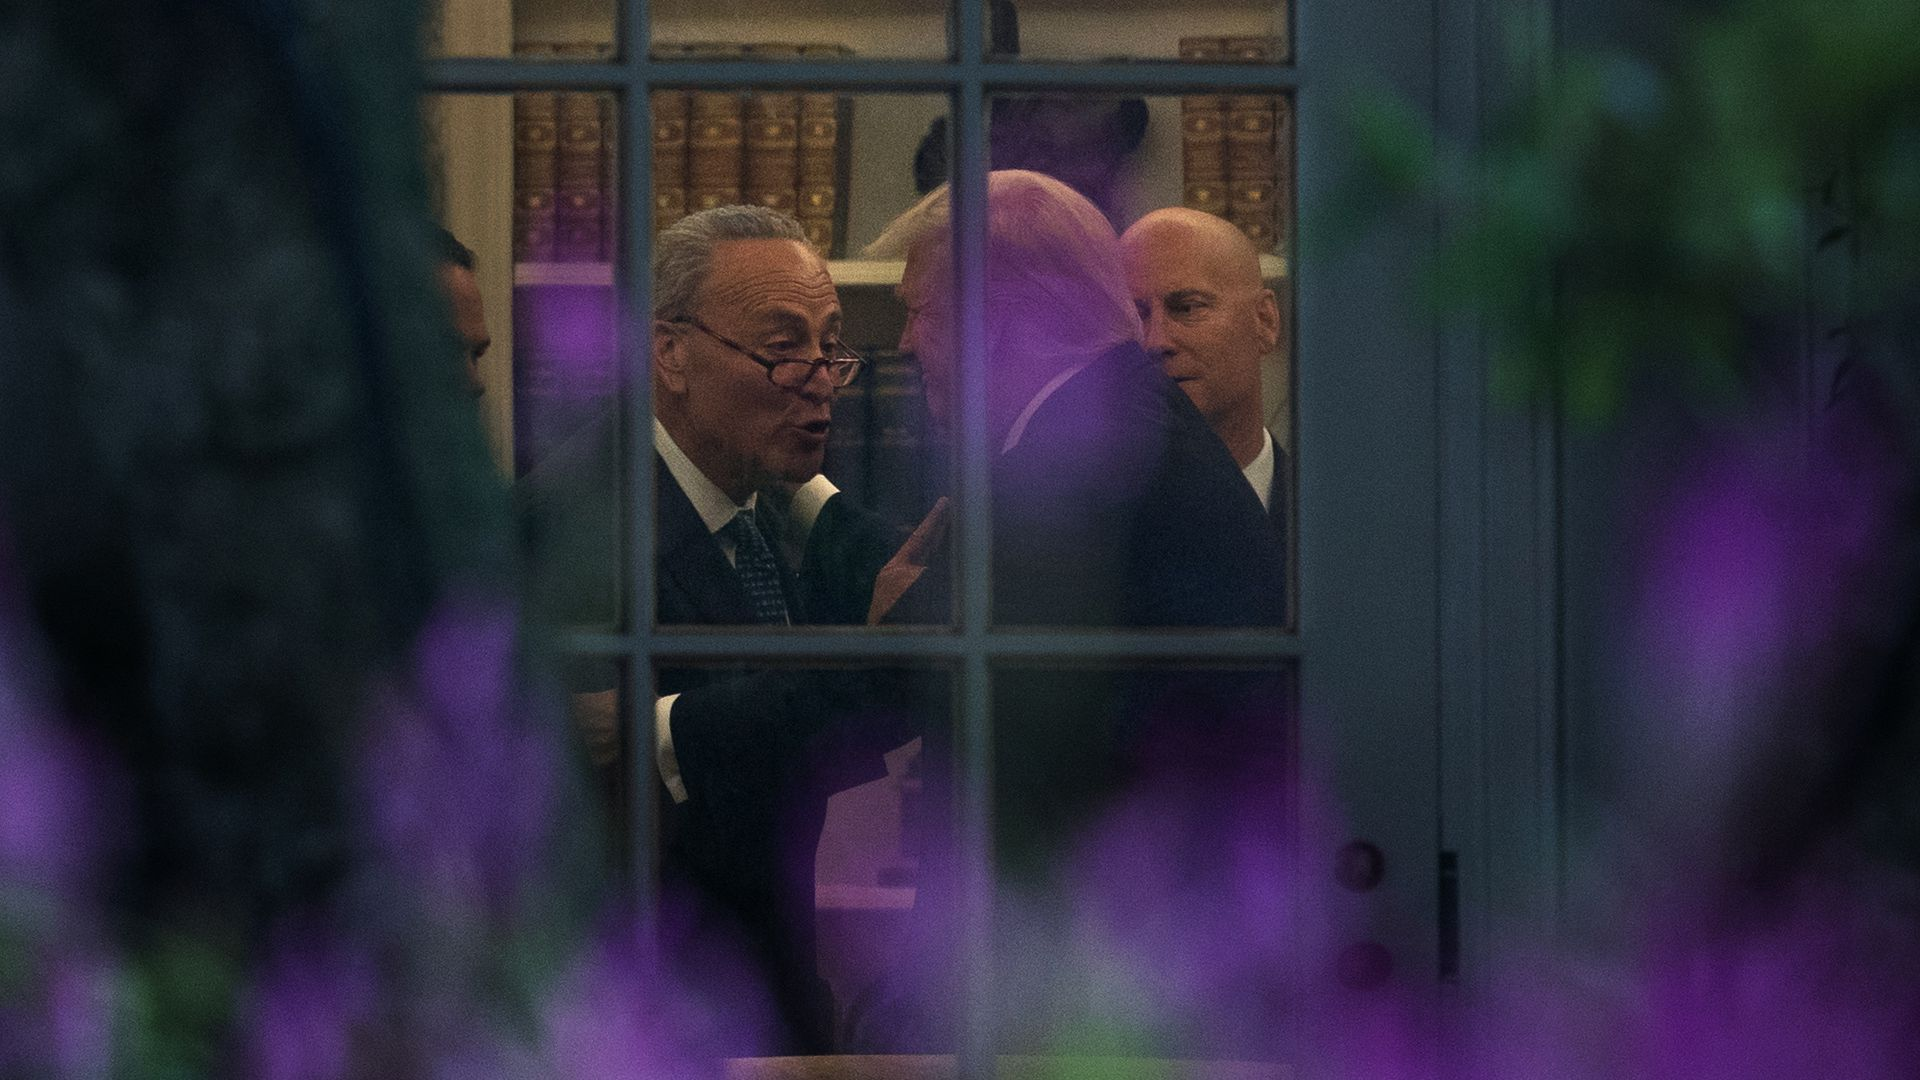 Schumer and Trump through the Oval Office window